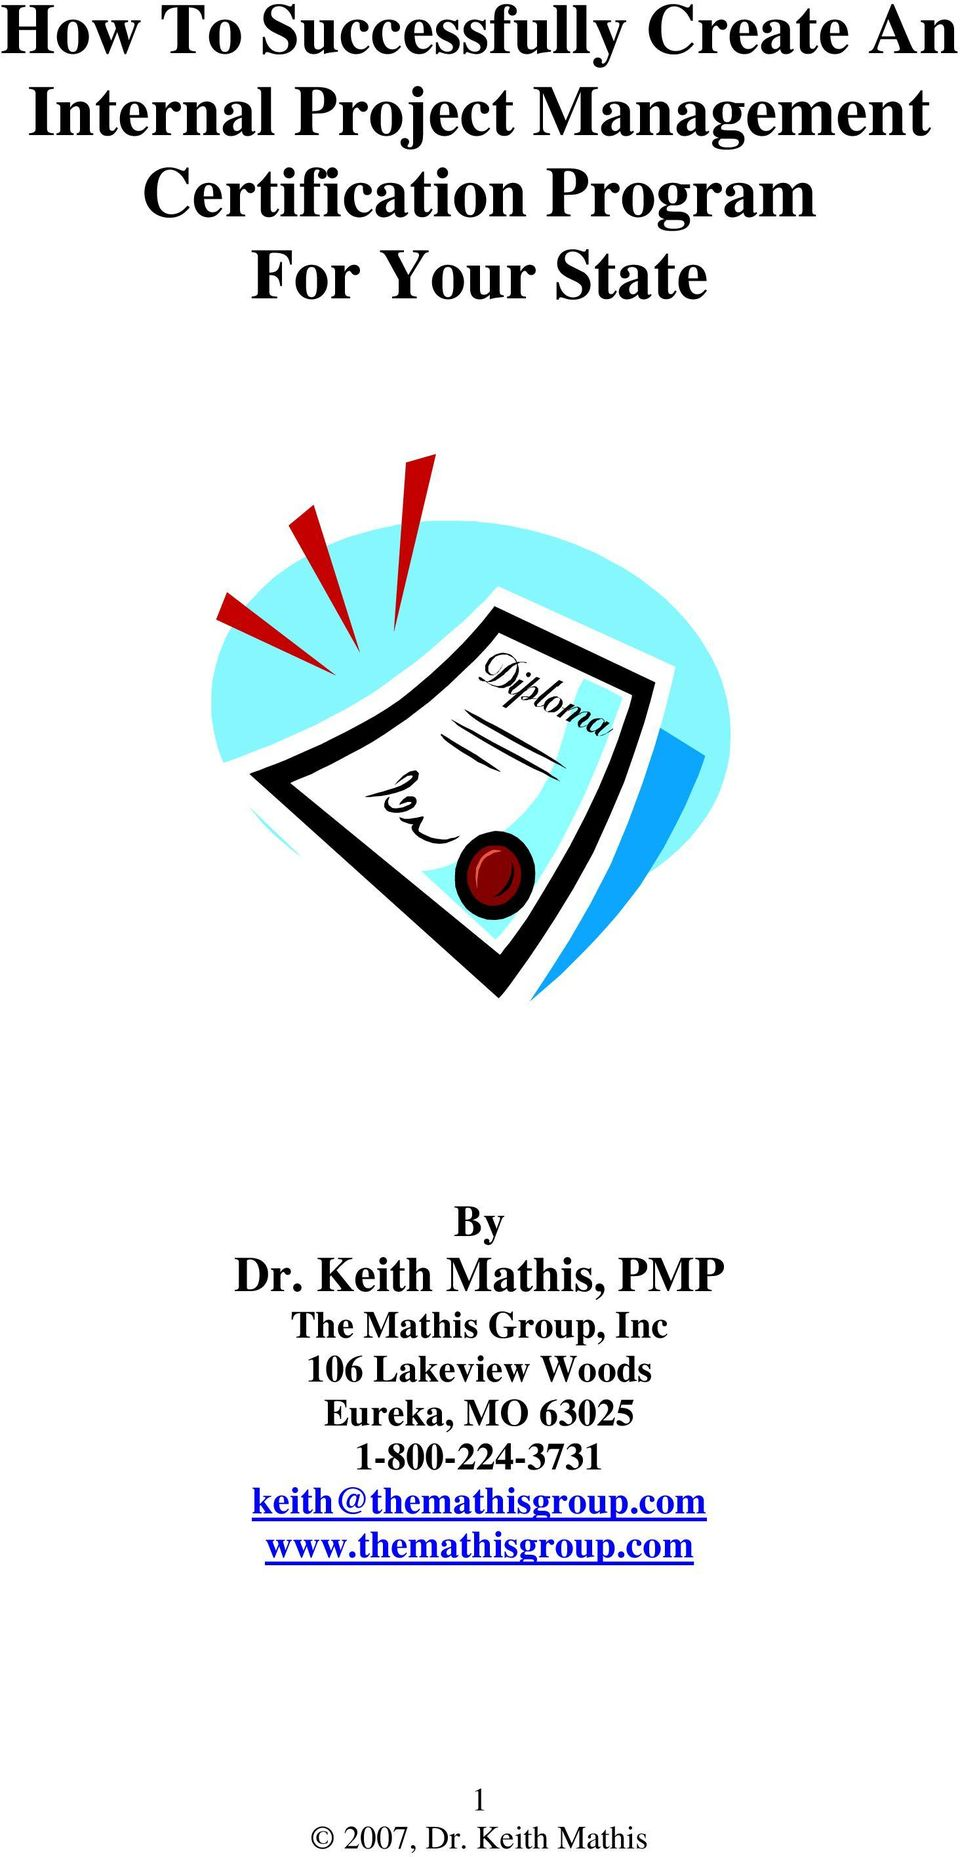 Keith Mathis, PMP The Mathis Group, Inc 106 Lakeview Woods